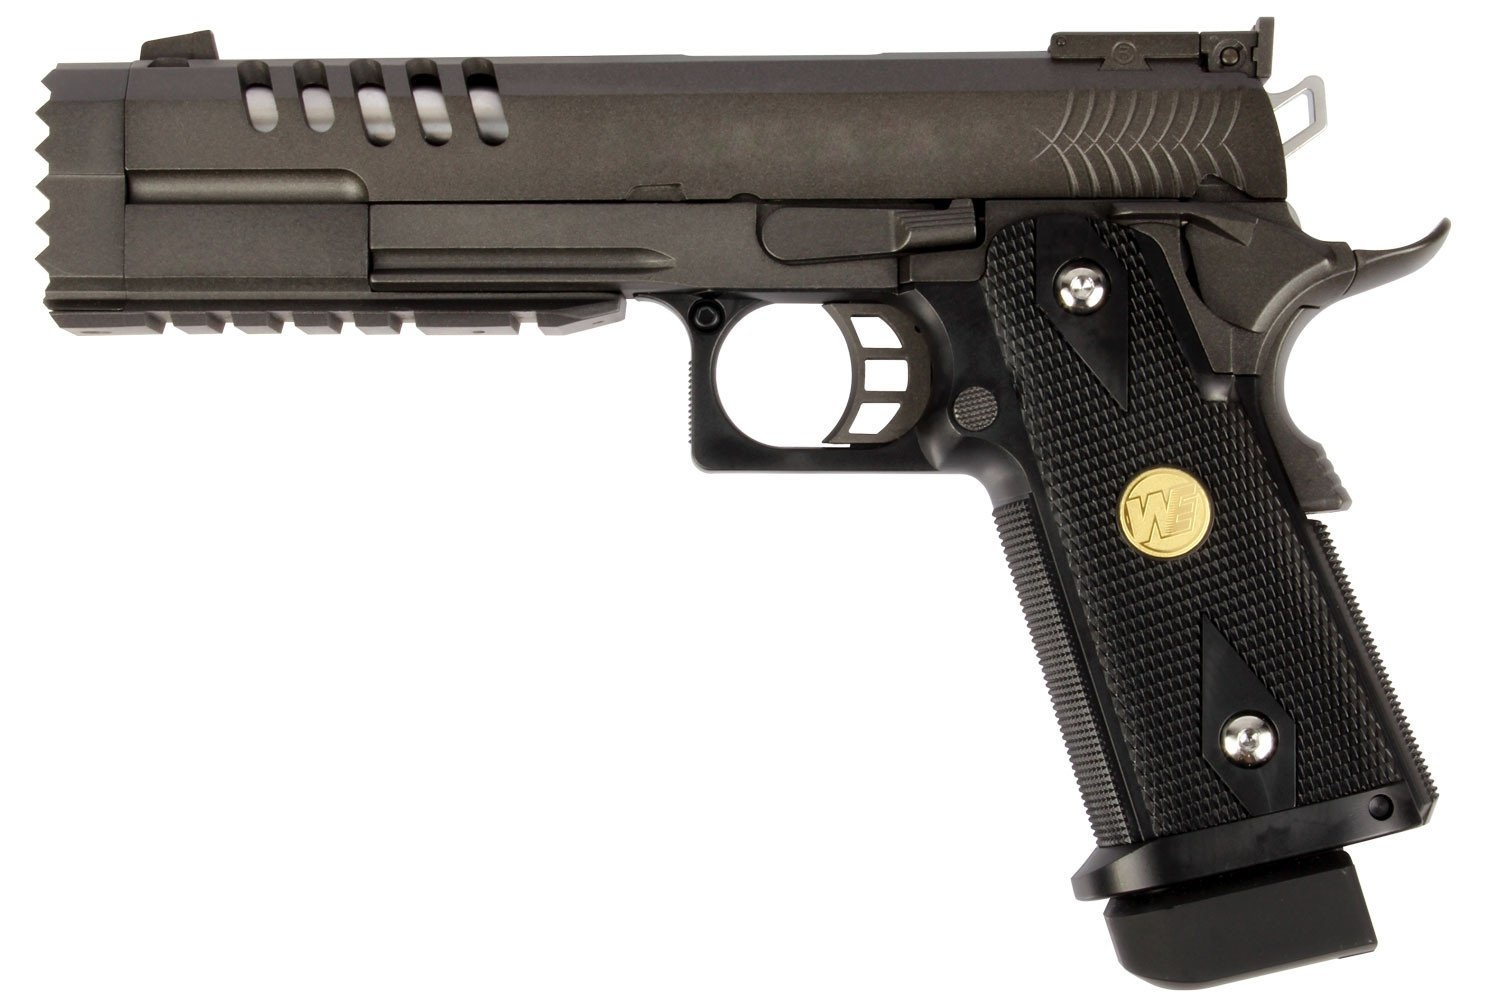 WE Tech Hi-Capa 5.2 Type K w/ extended barrel